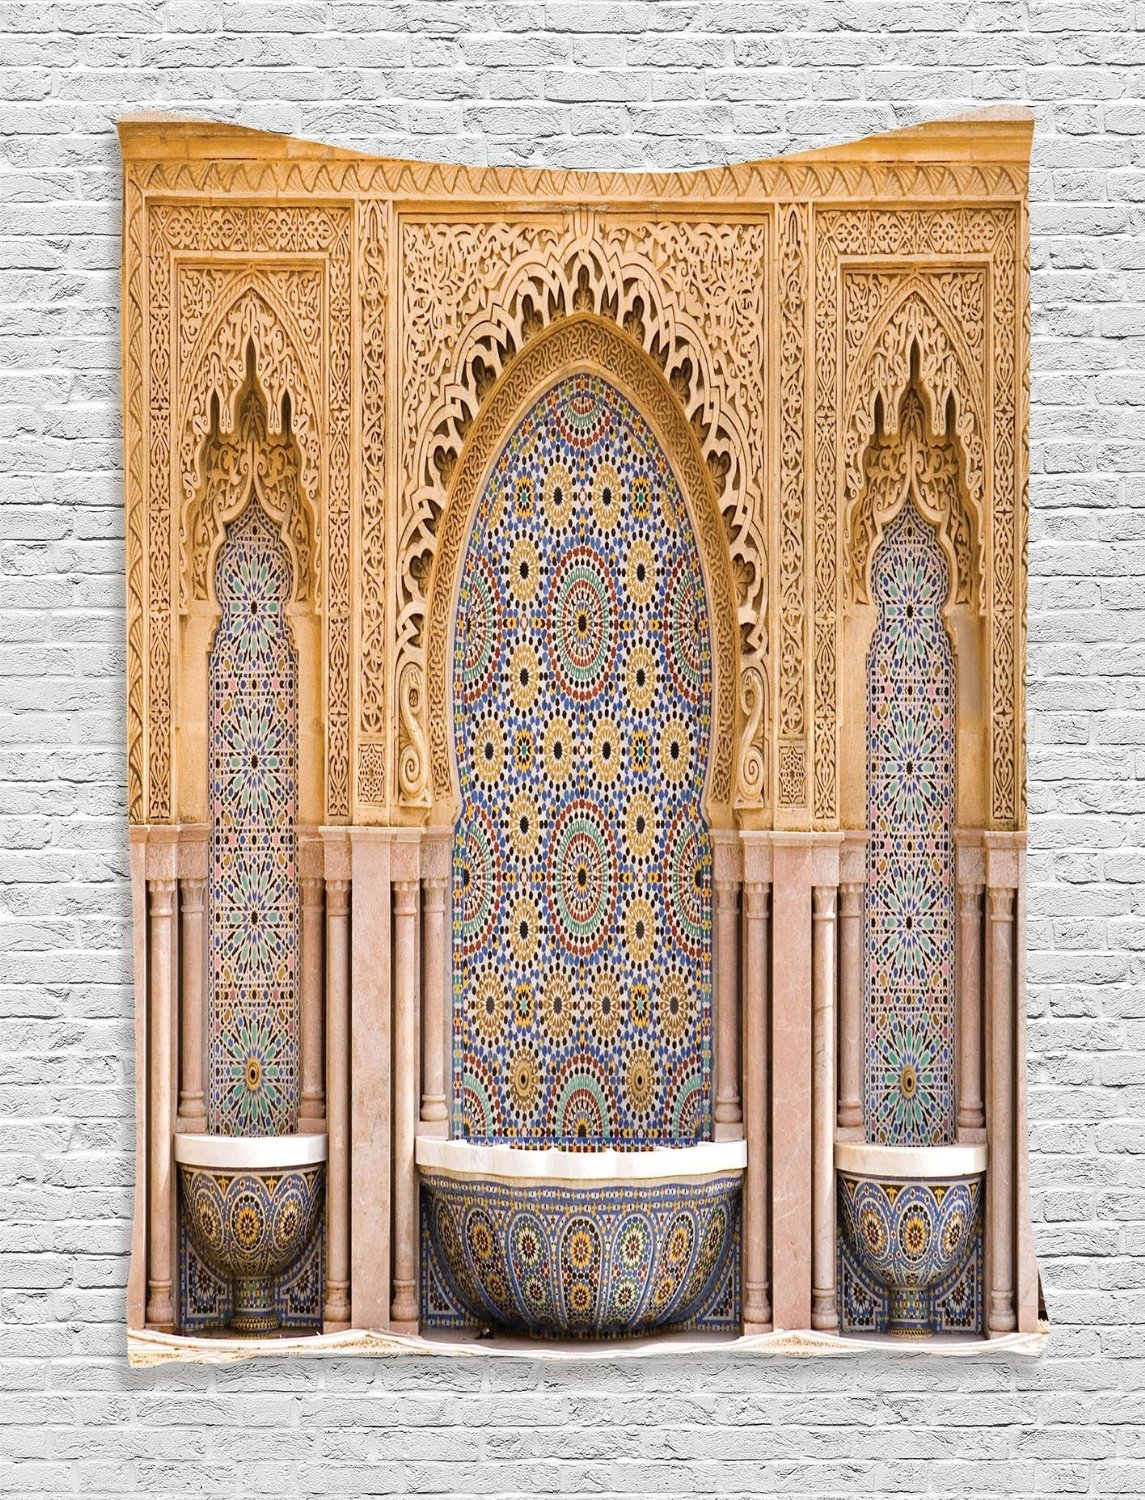 Ambesonne Moroccan Decor Collection, Typical Moroccan Tiled Fountain in the City of Rabat near the Hassan Tower Image, Bedroom Living Room Dorm Wall Hanging Tapestry, Ivory Blue